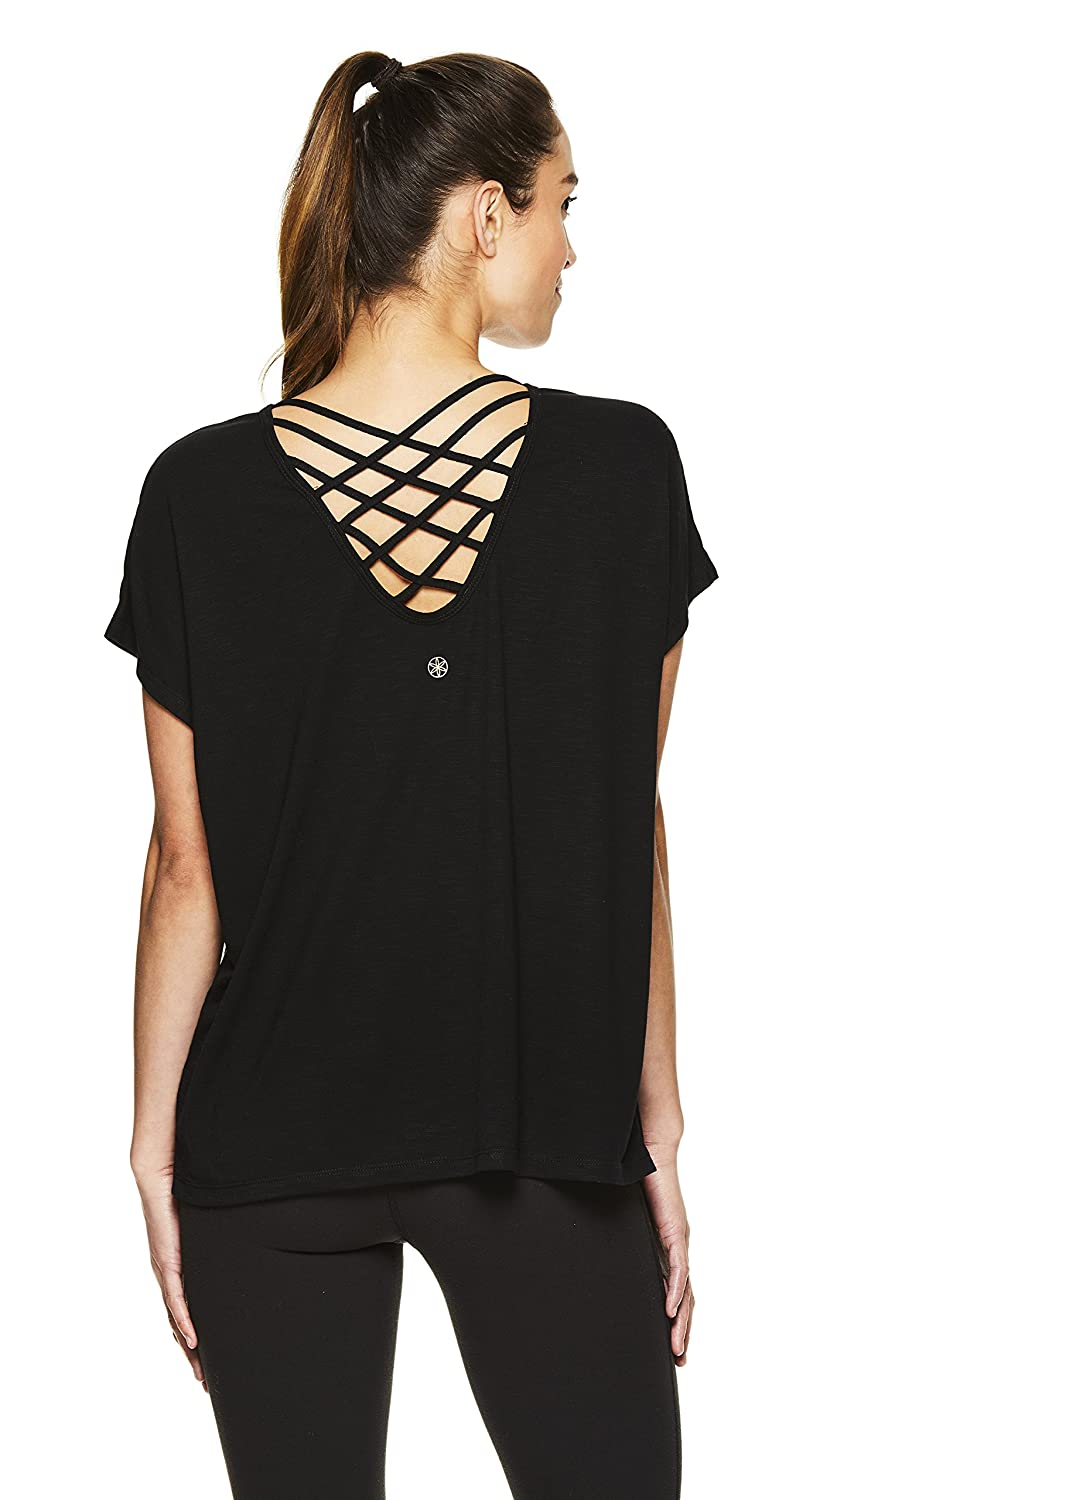 b798f2f4c03a3d Top 10 wholesale Shirts With An Open Back - Chinabrands.com